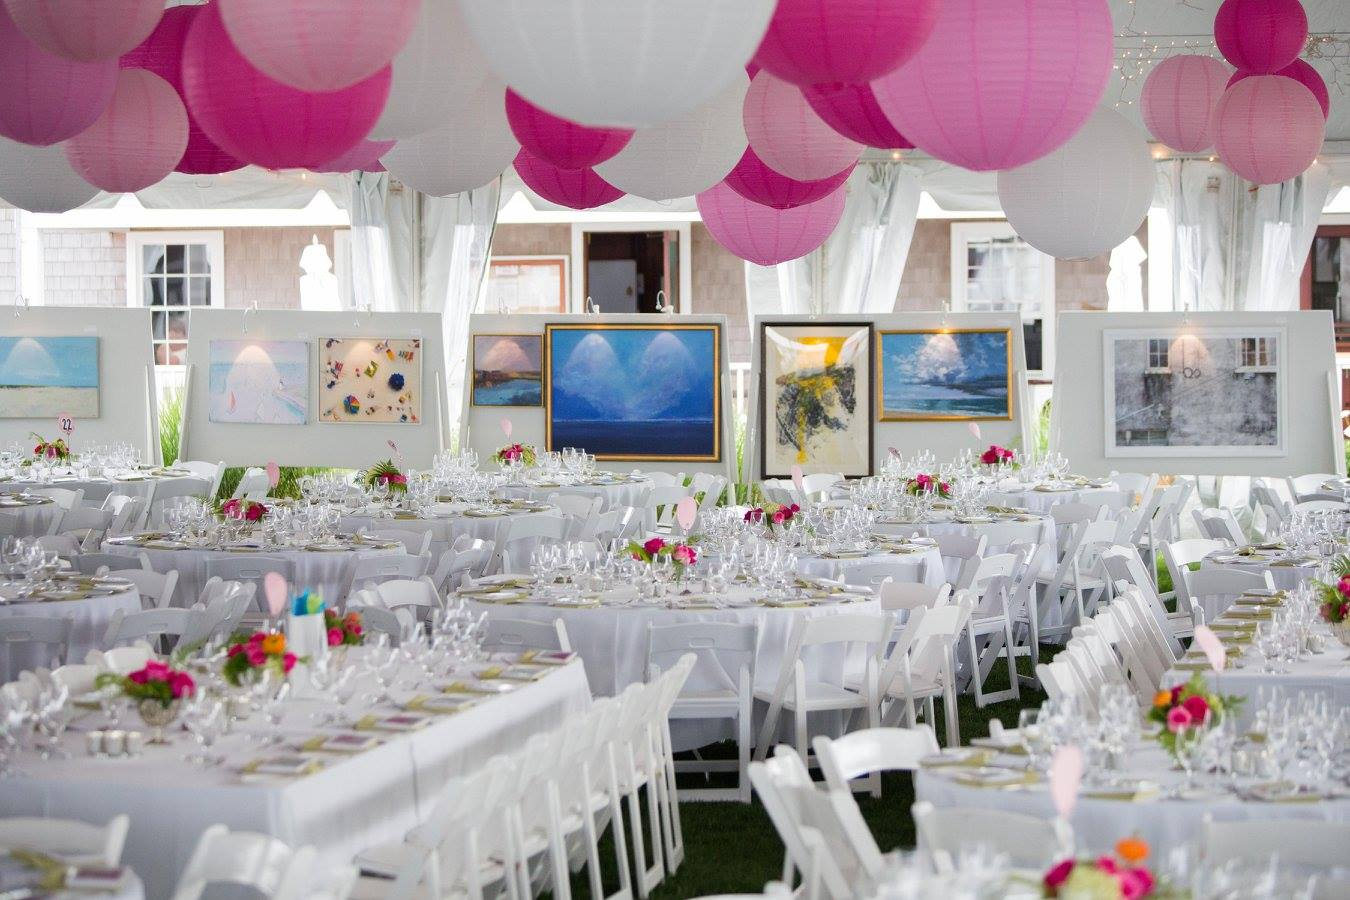 Event With Beautiful Place Settings at Tables and Artwork Displayed